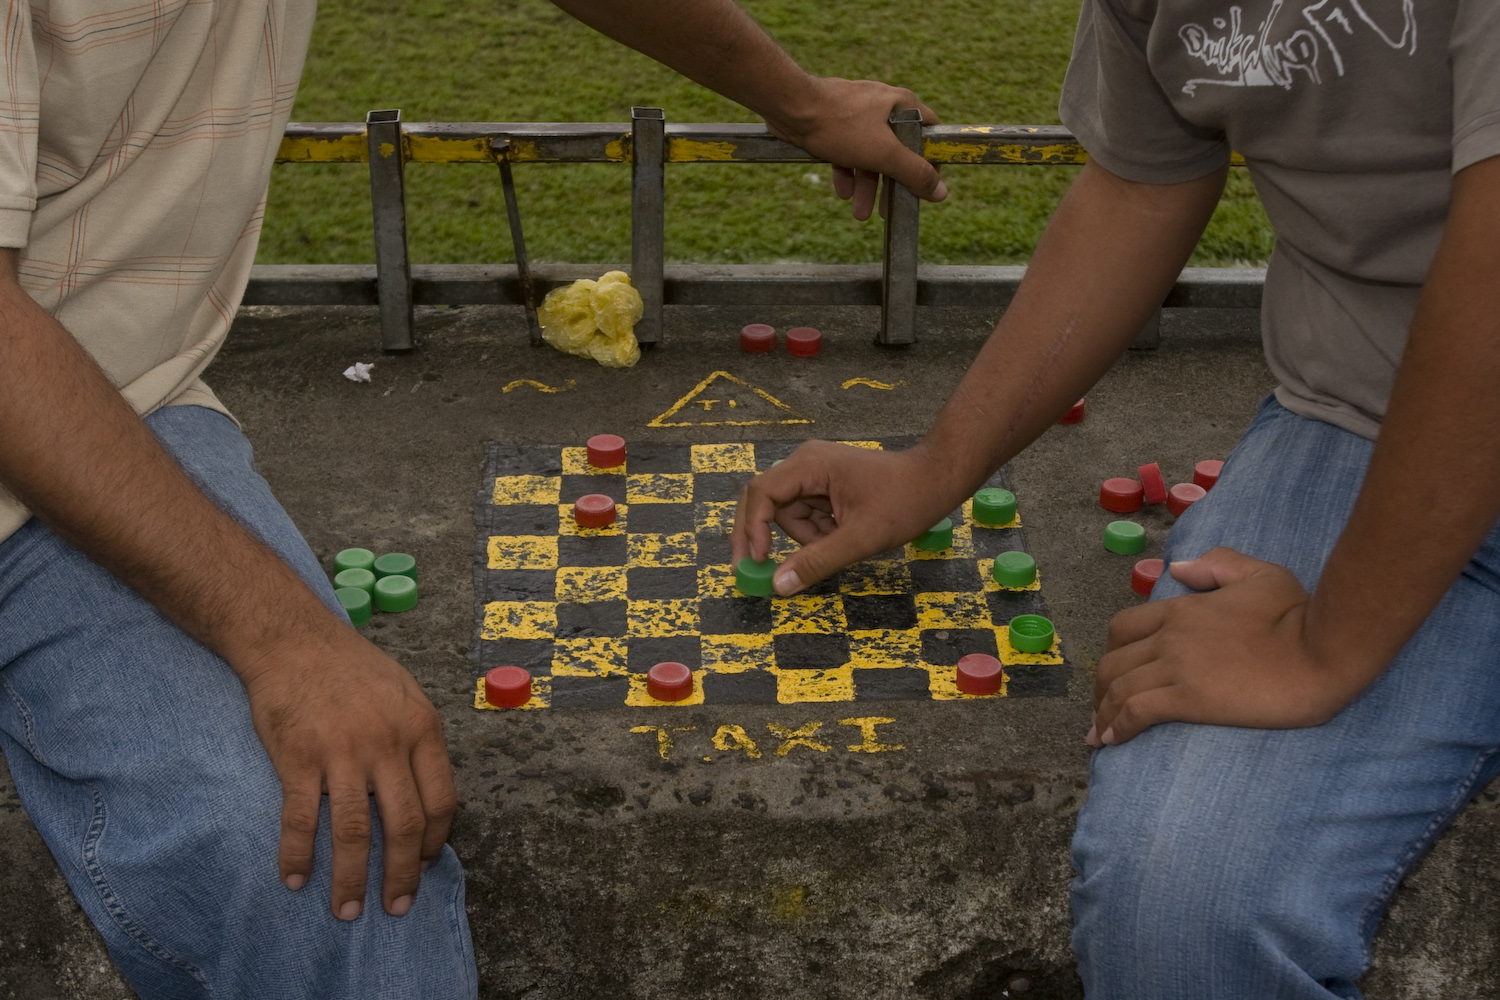 Conductores de Taxi juegan damas chinas en la plaza de Sarapiquí. Taxi drivers play checkers next to the Sarapiquí soccer field.